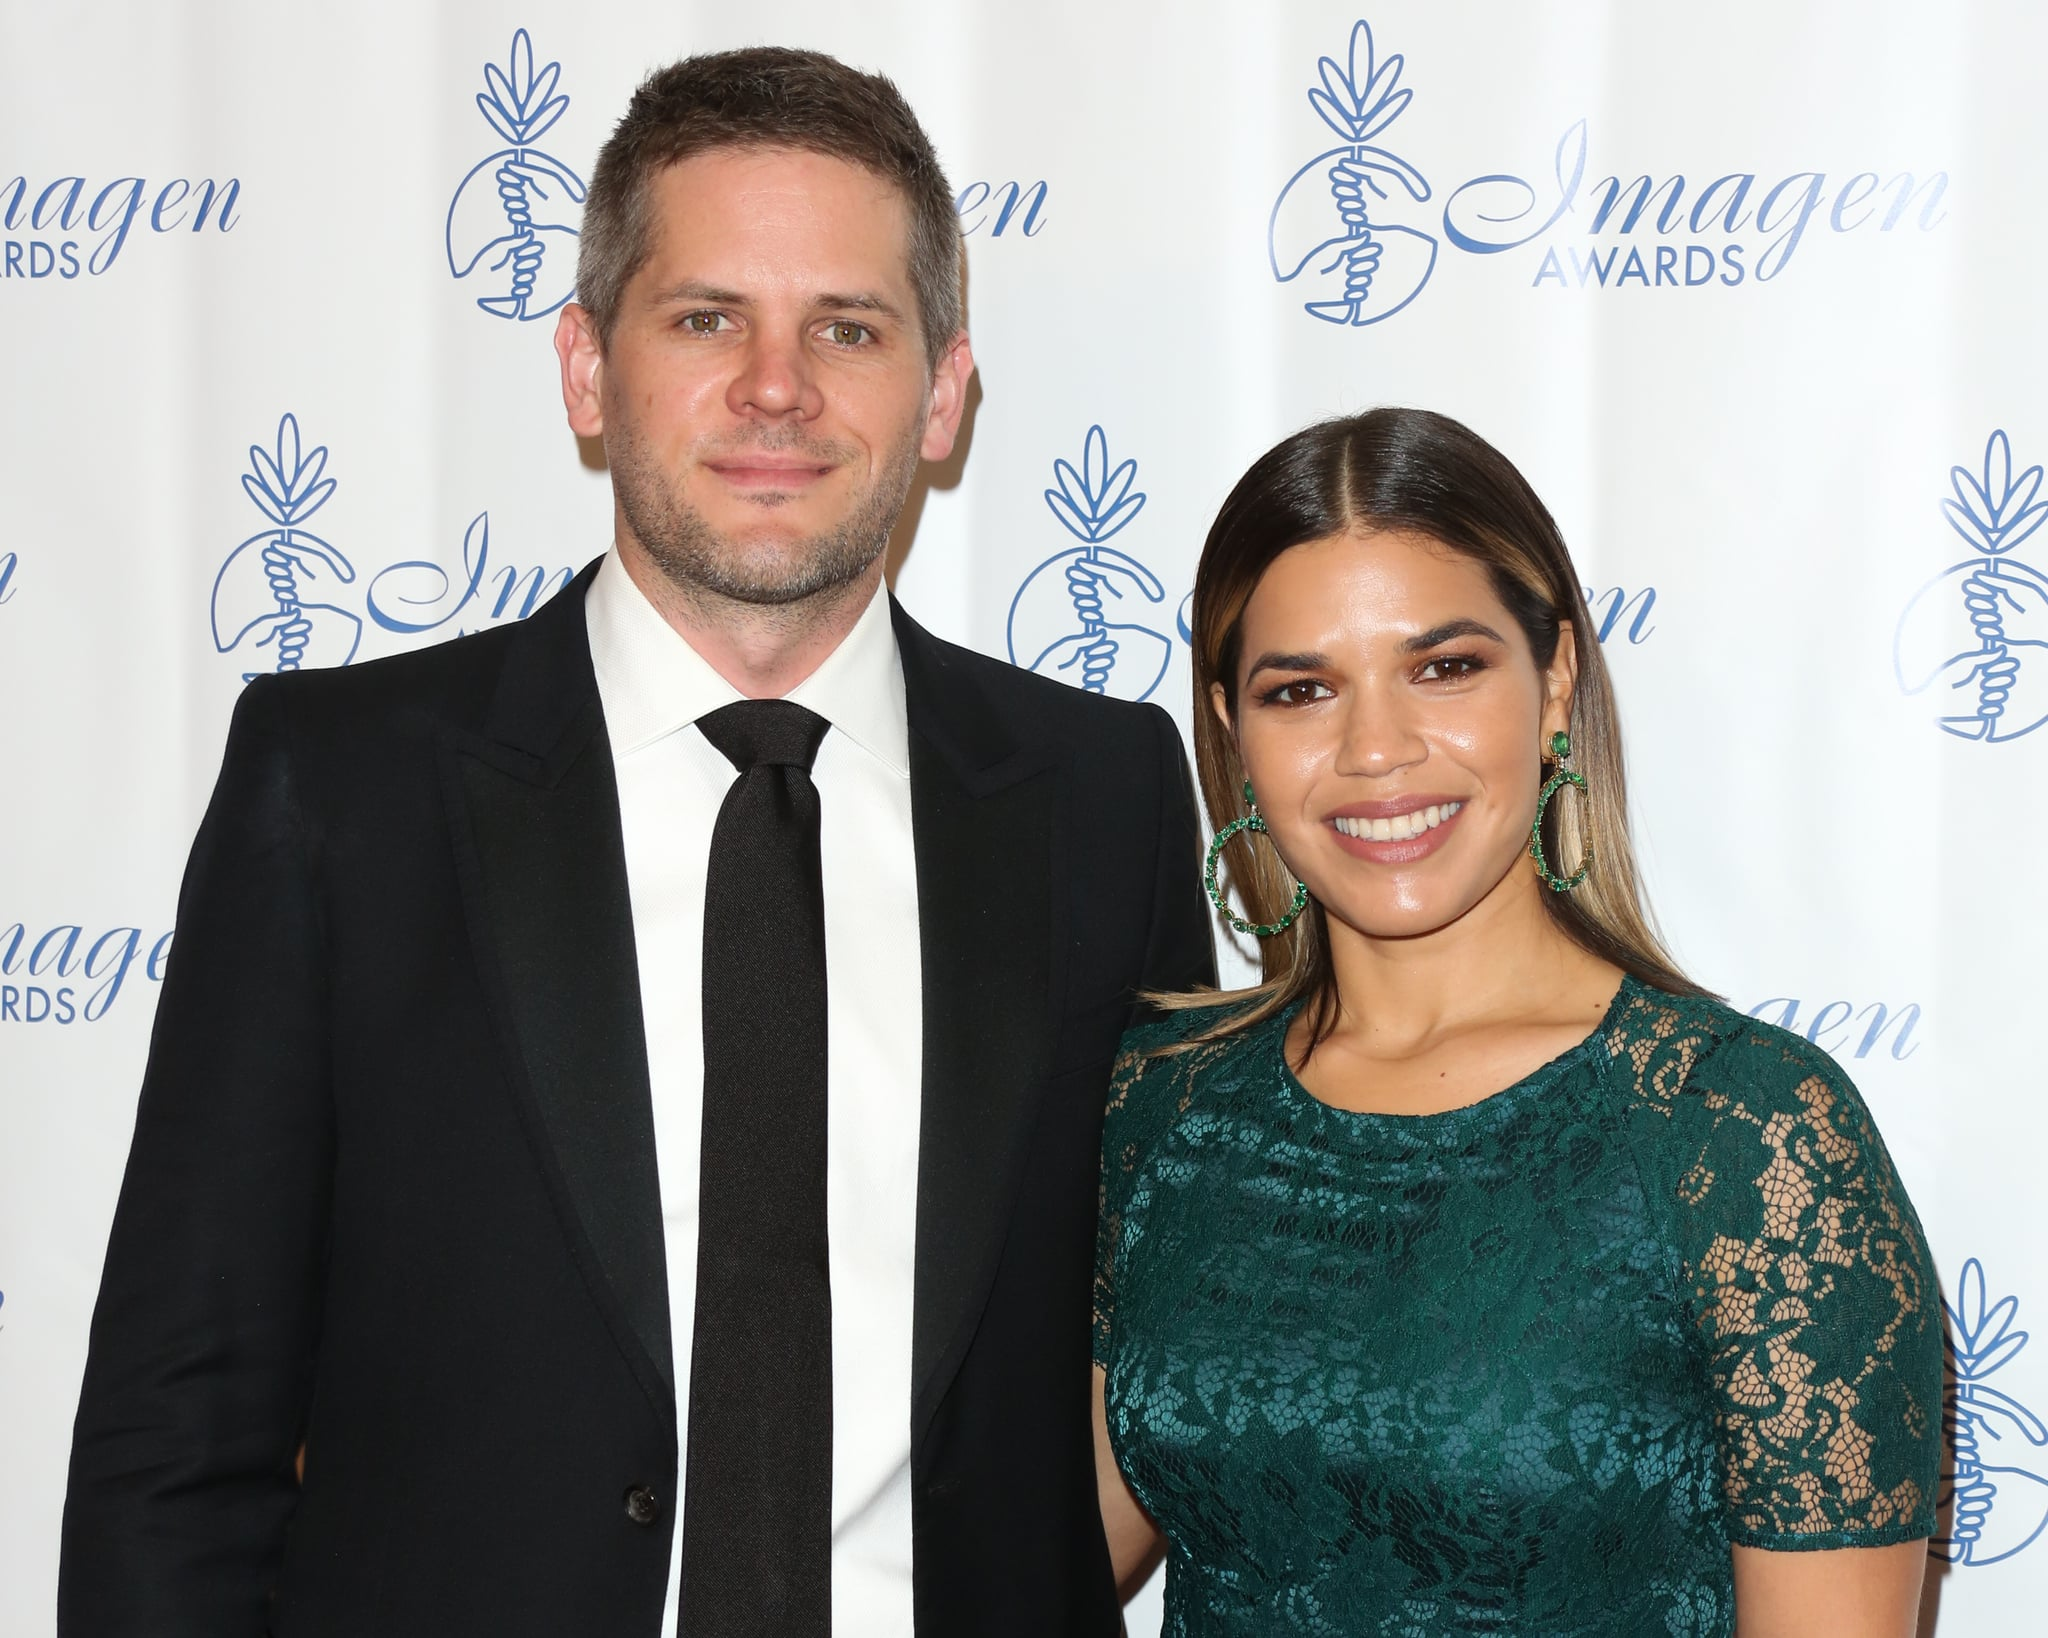 BEVERLY HILLS, CA - AUGUST 18:  Actors America Ferrera (R) and Ryan Piers Williams (L) attend the 32nd Annual Imagen Awards at the Beverly Wilshire Four Seasons Hotel on August 18, 2017 in Beverly Hills, California.  (Photo by Paul Archuleta/FilmMagic)